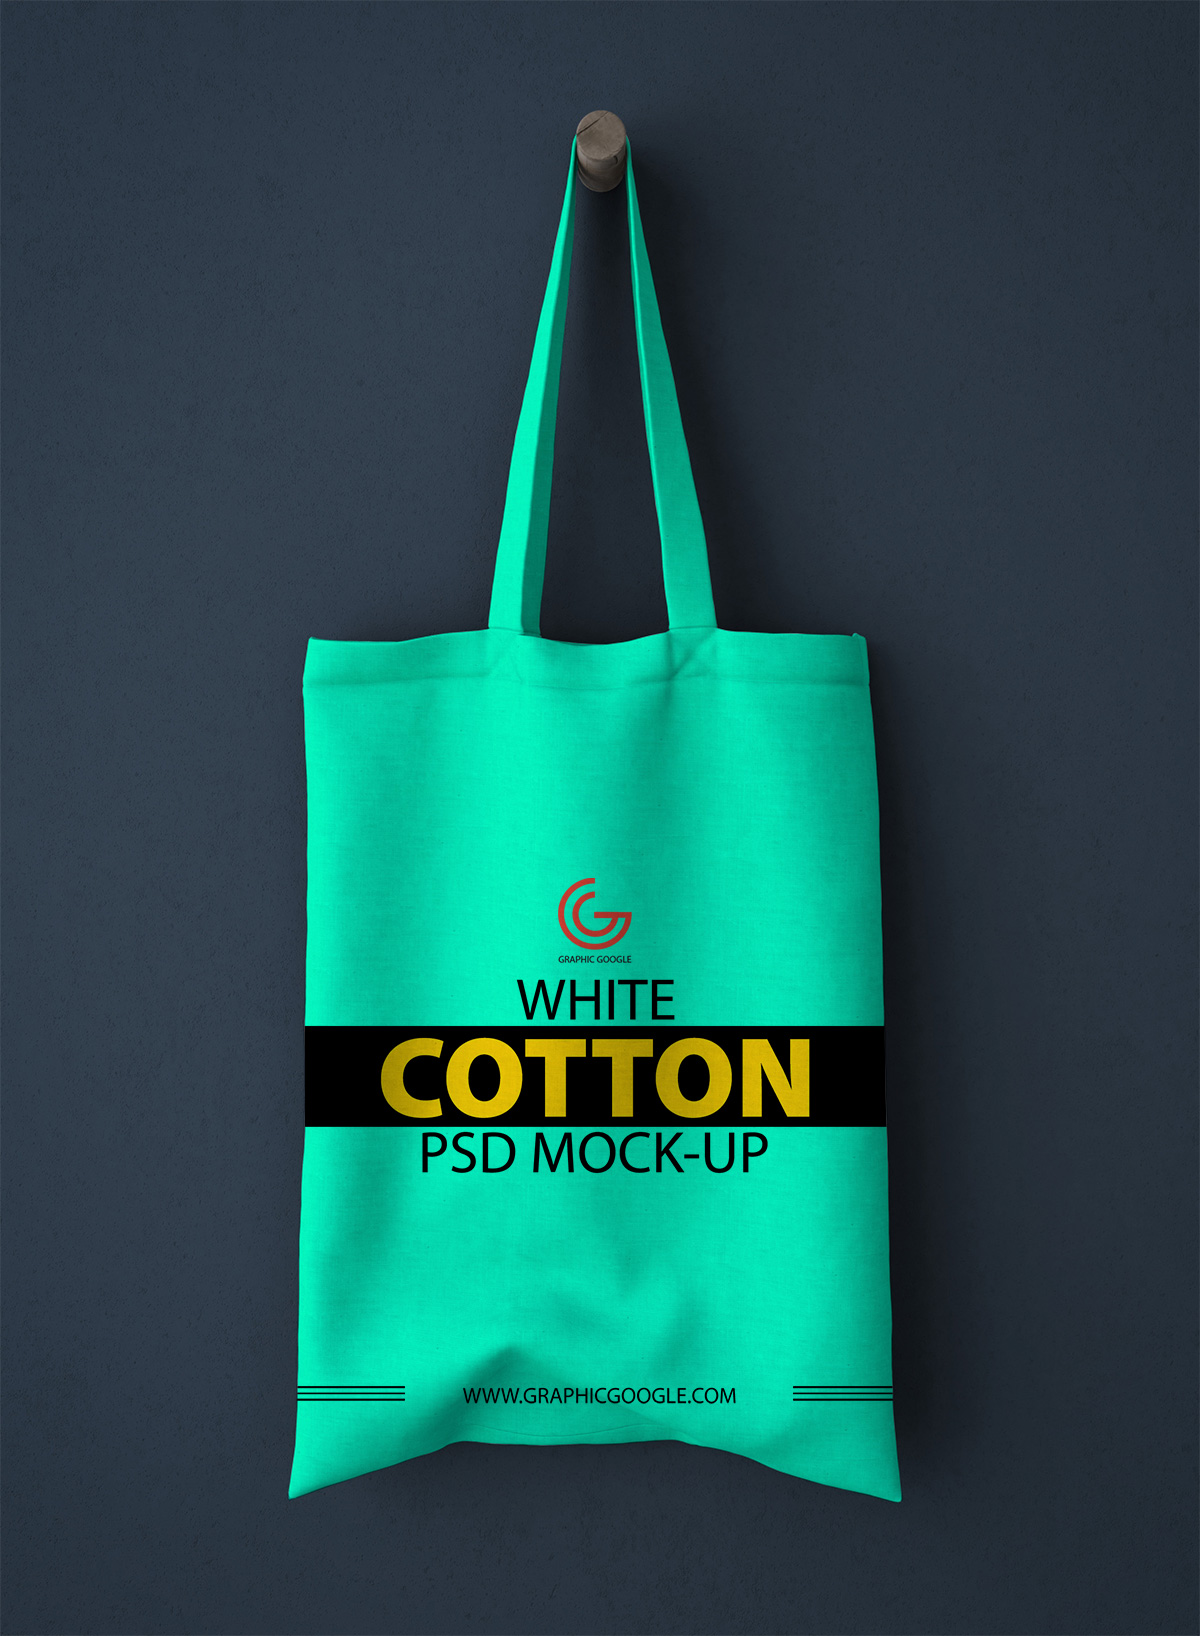 white-cotton-bag-psd-mock-up-2